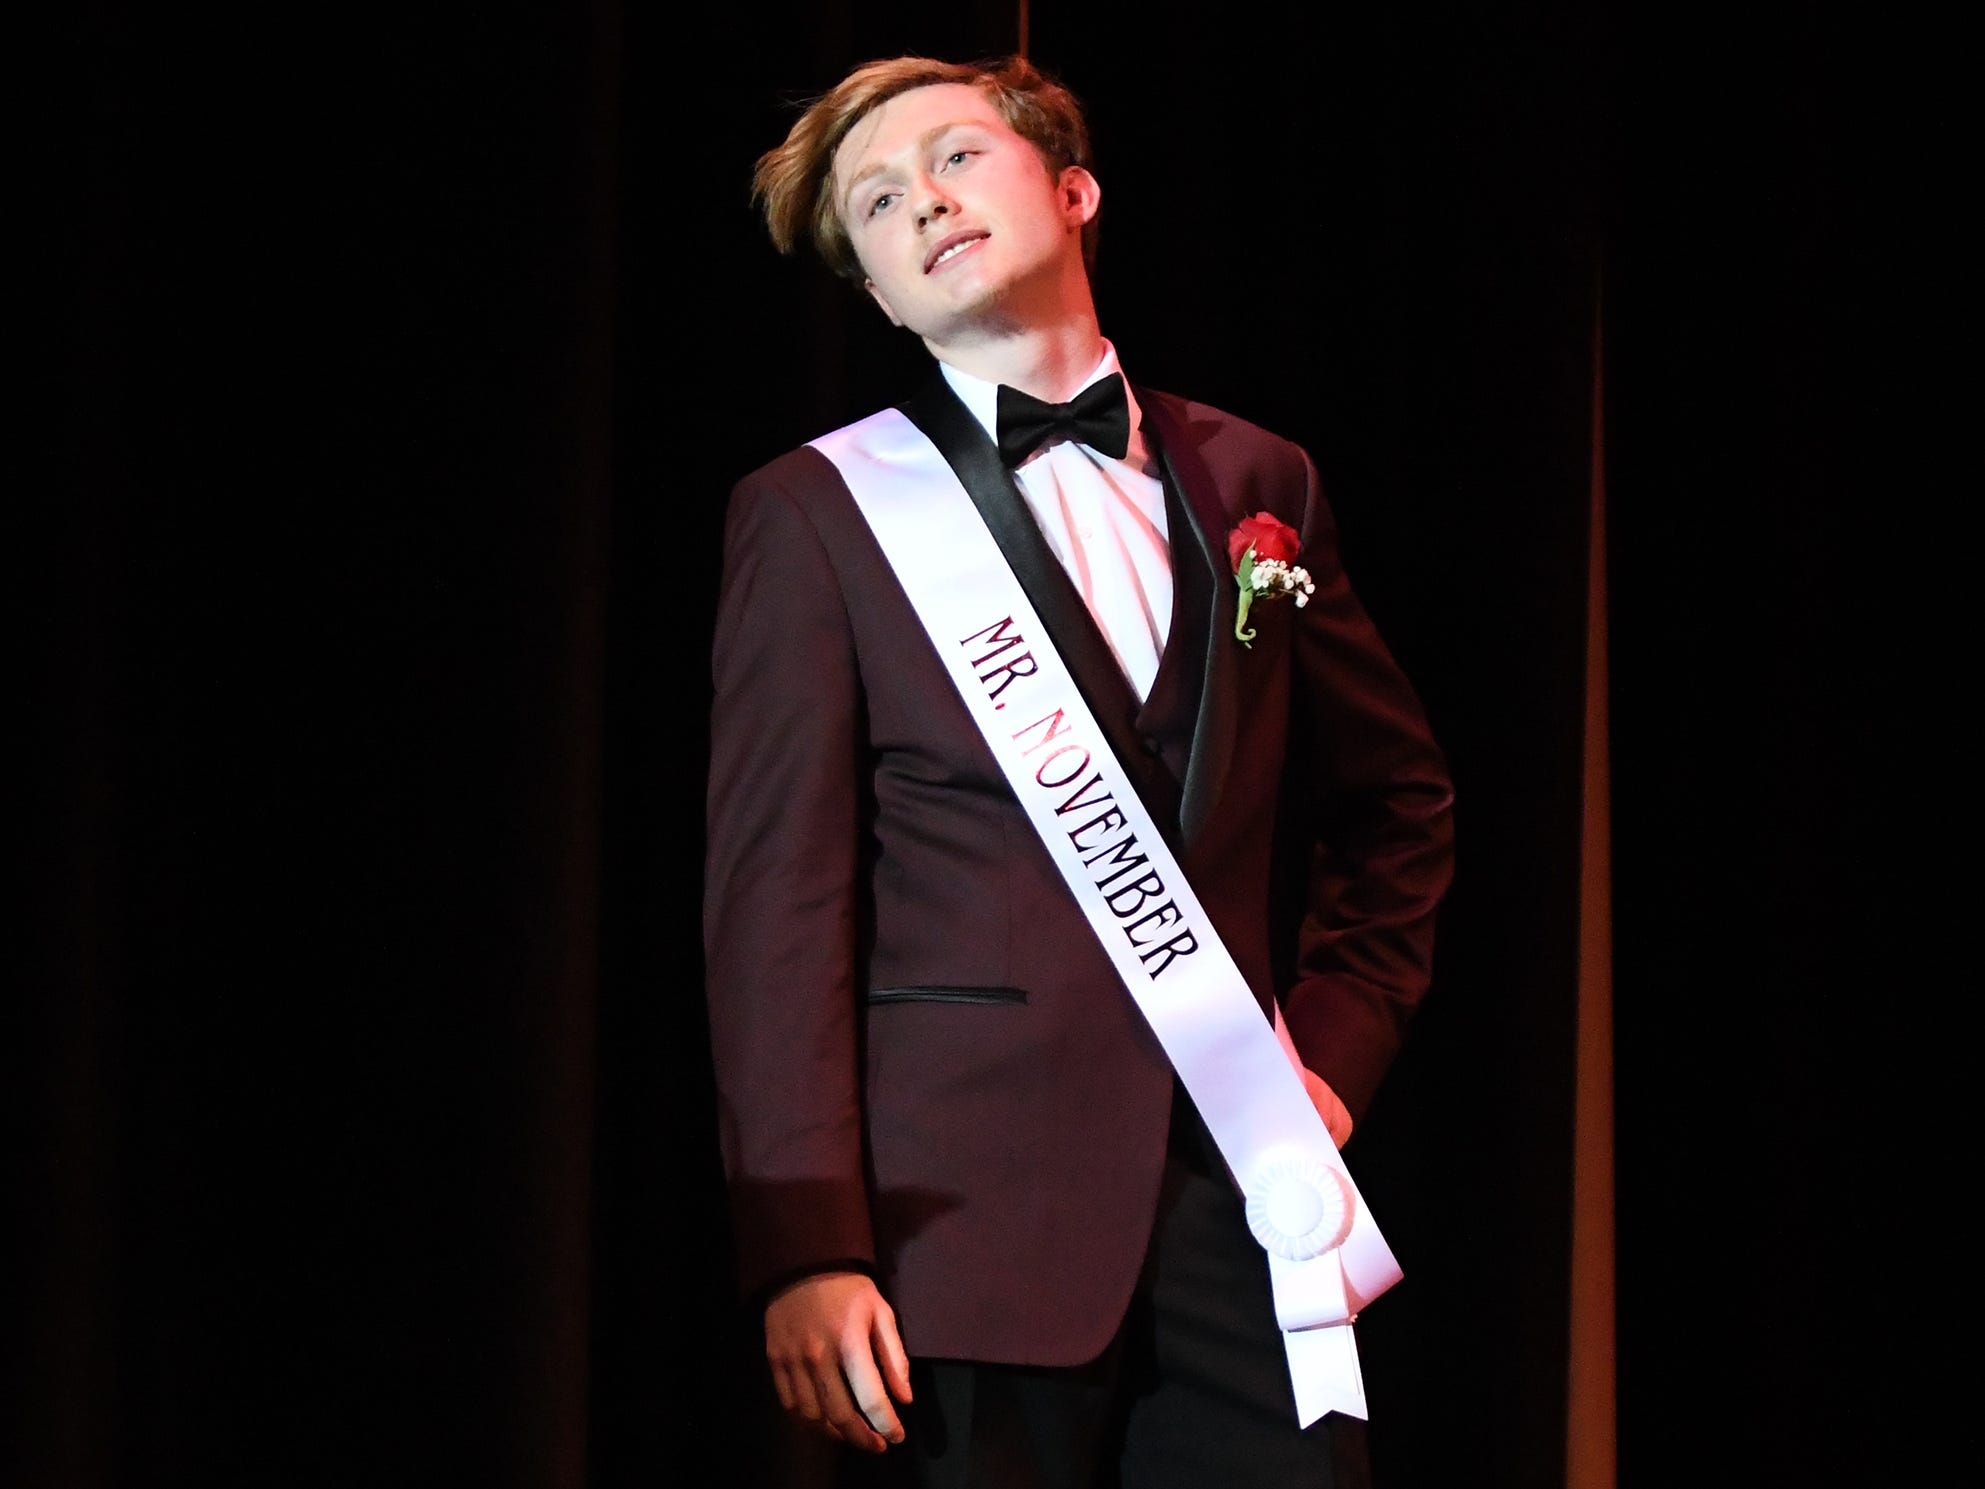 Tyler Kimmel shows off his formal wear during Mr. Vineland 2019 at Vineland High School on Thursday, January 10.